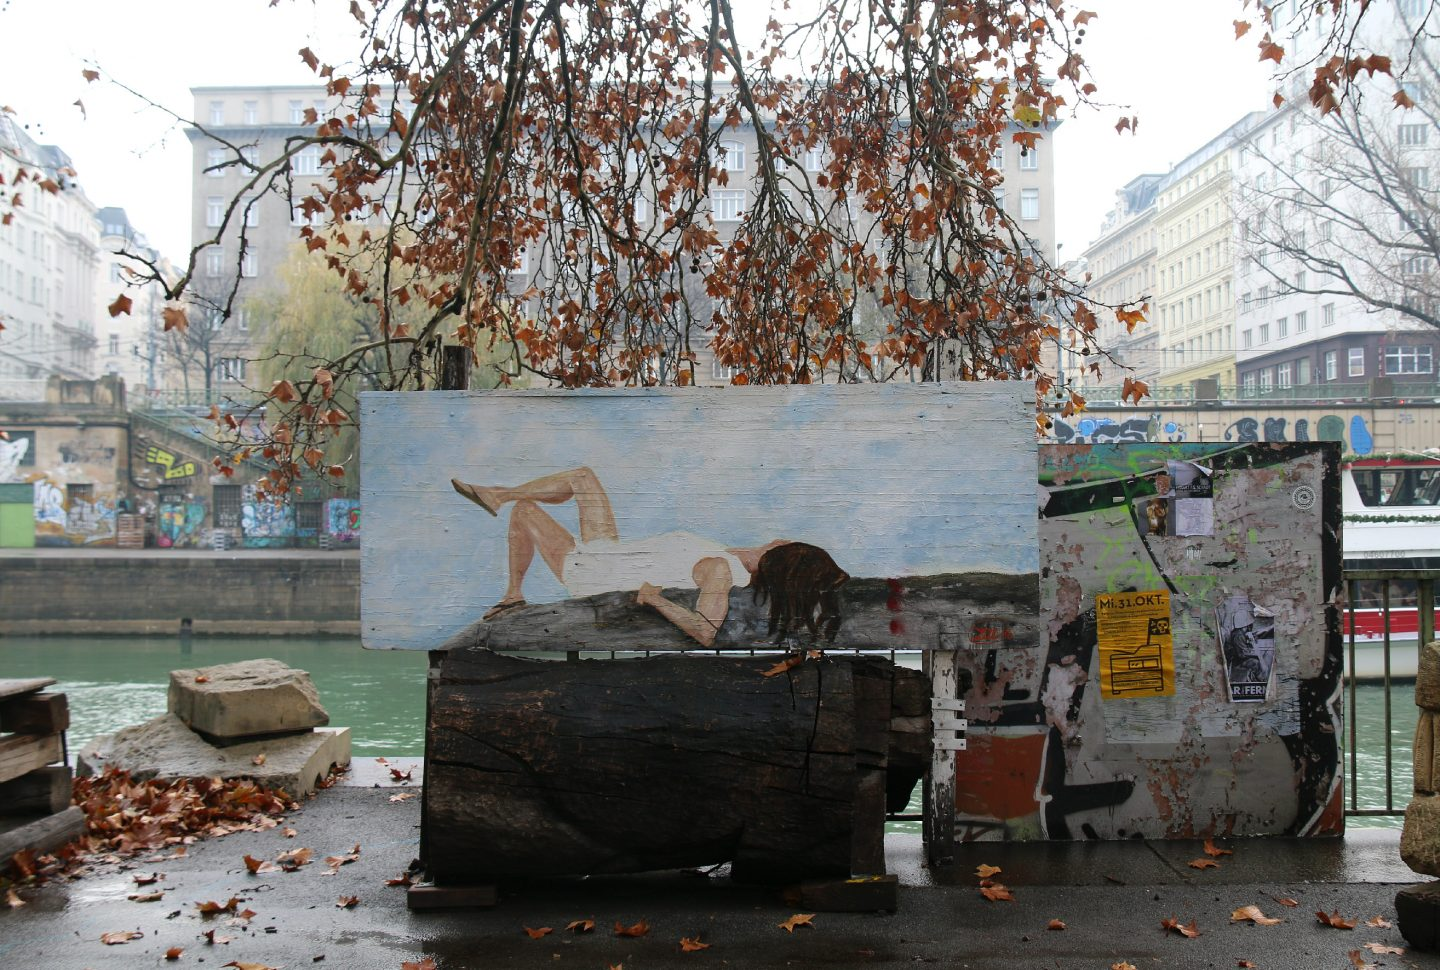 Vienna street art by the canal 6